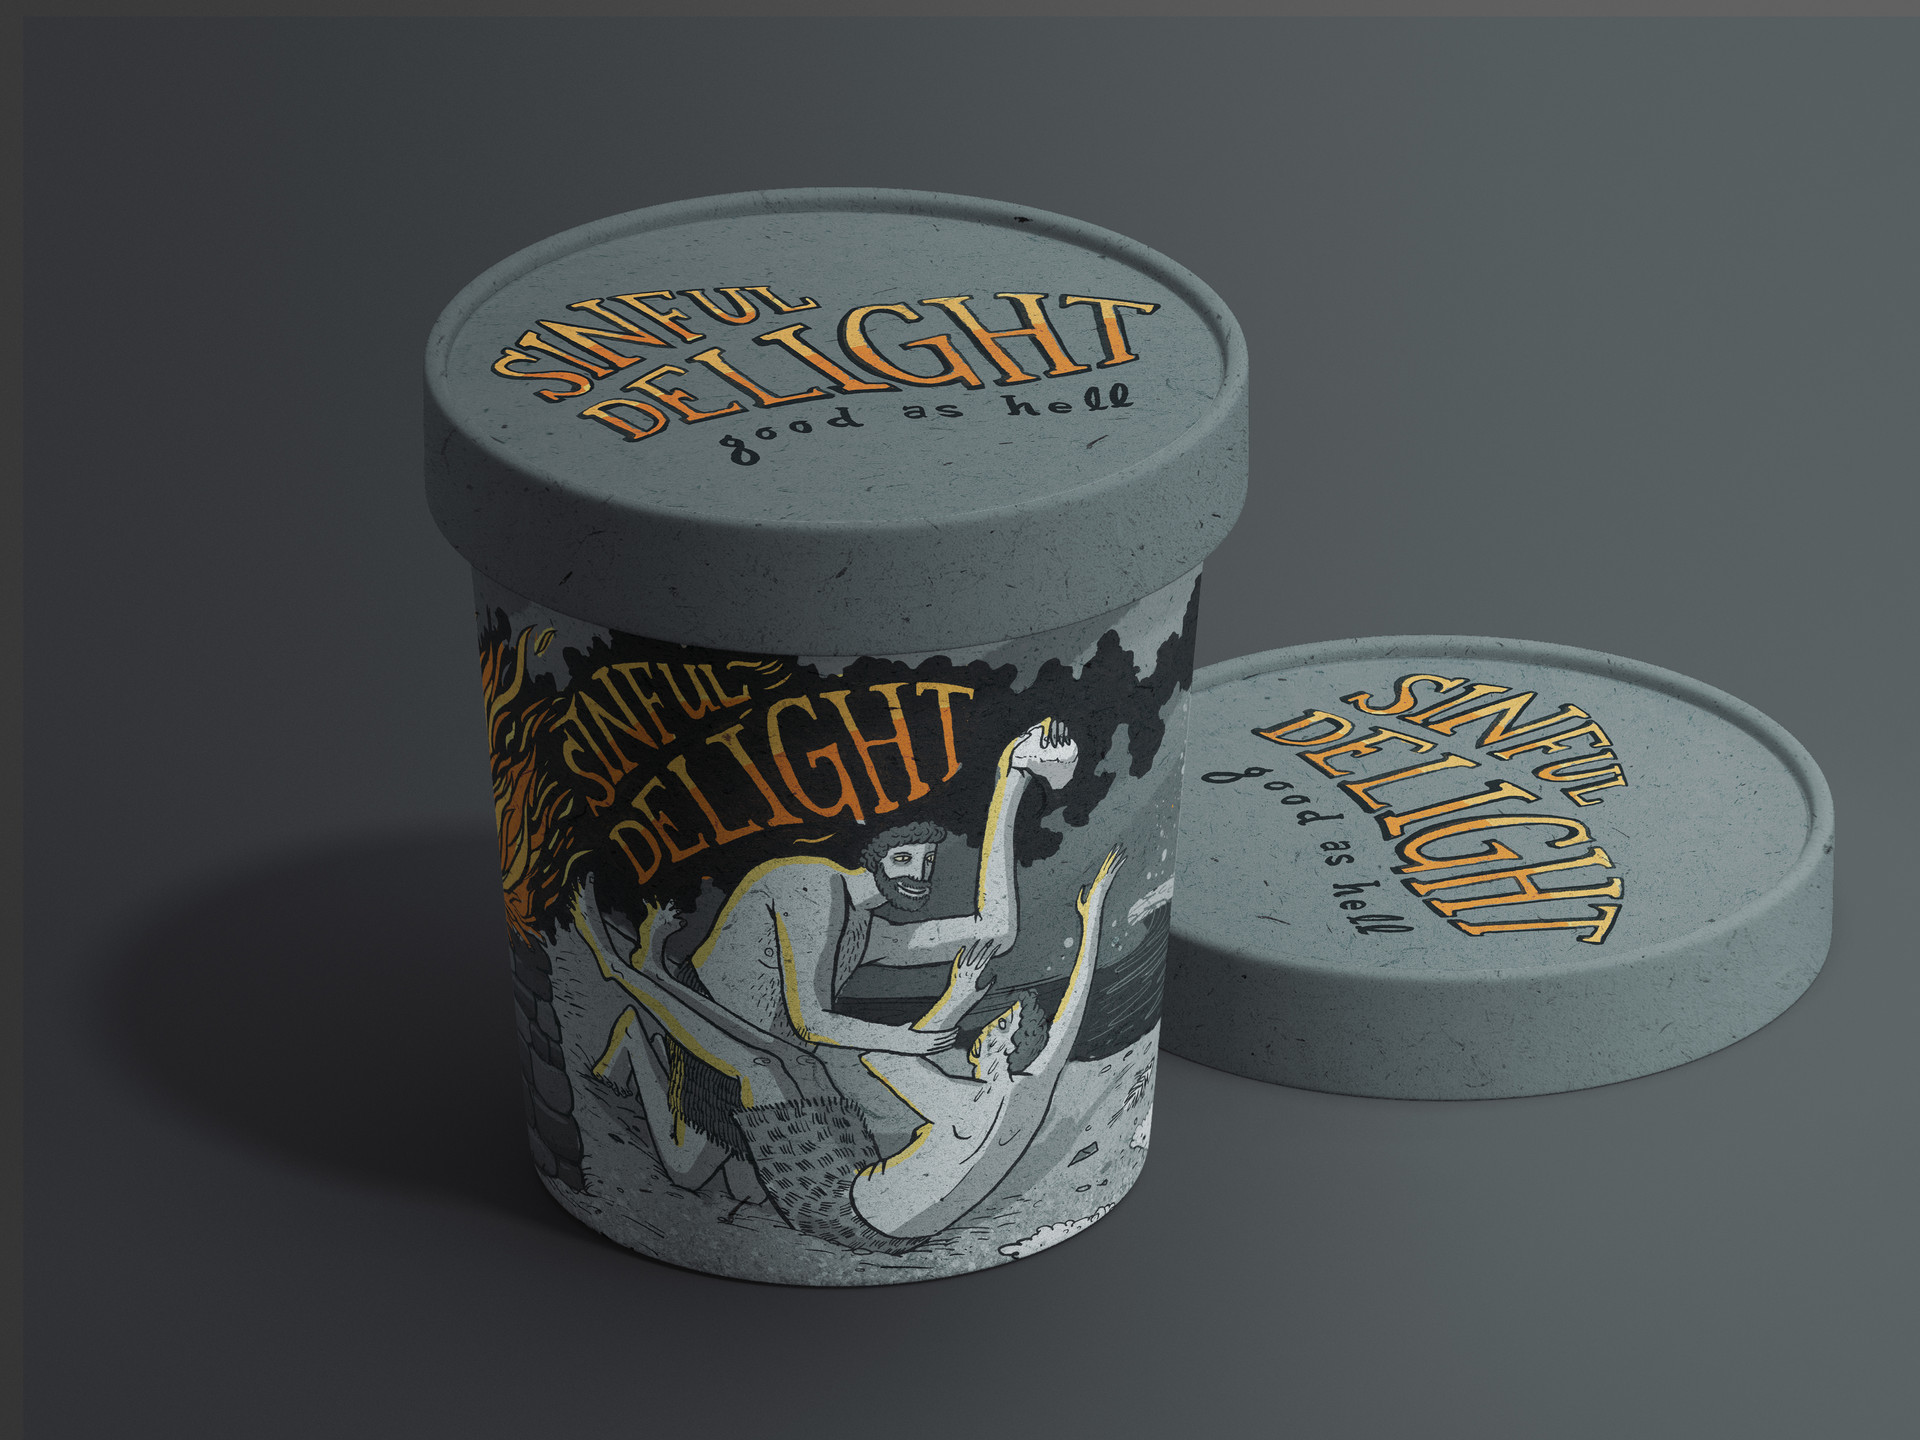 icecream mockup fina cain copy.jpg